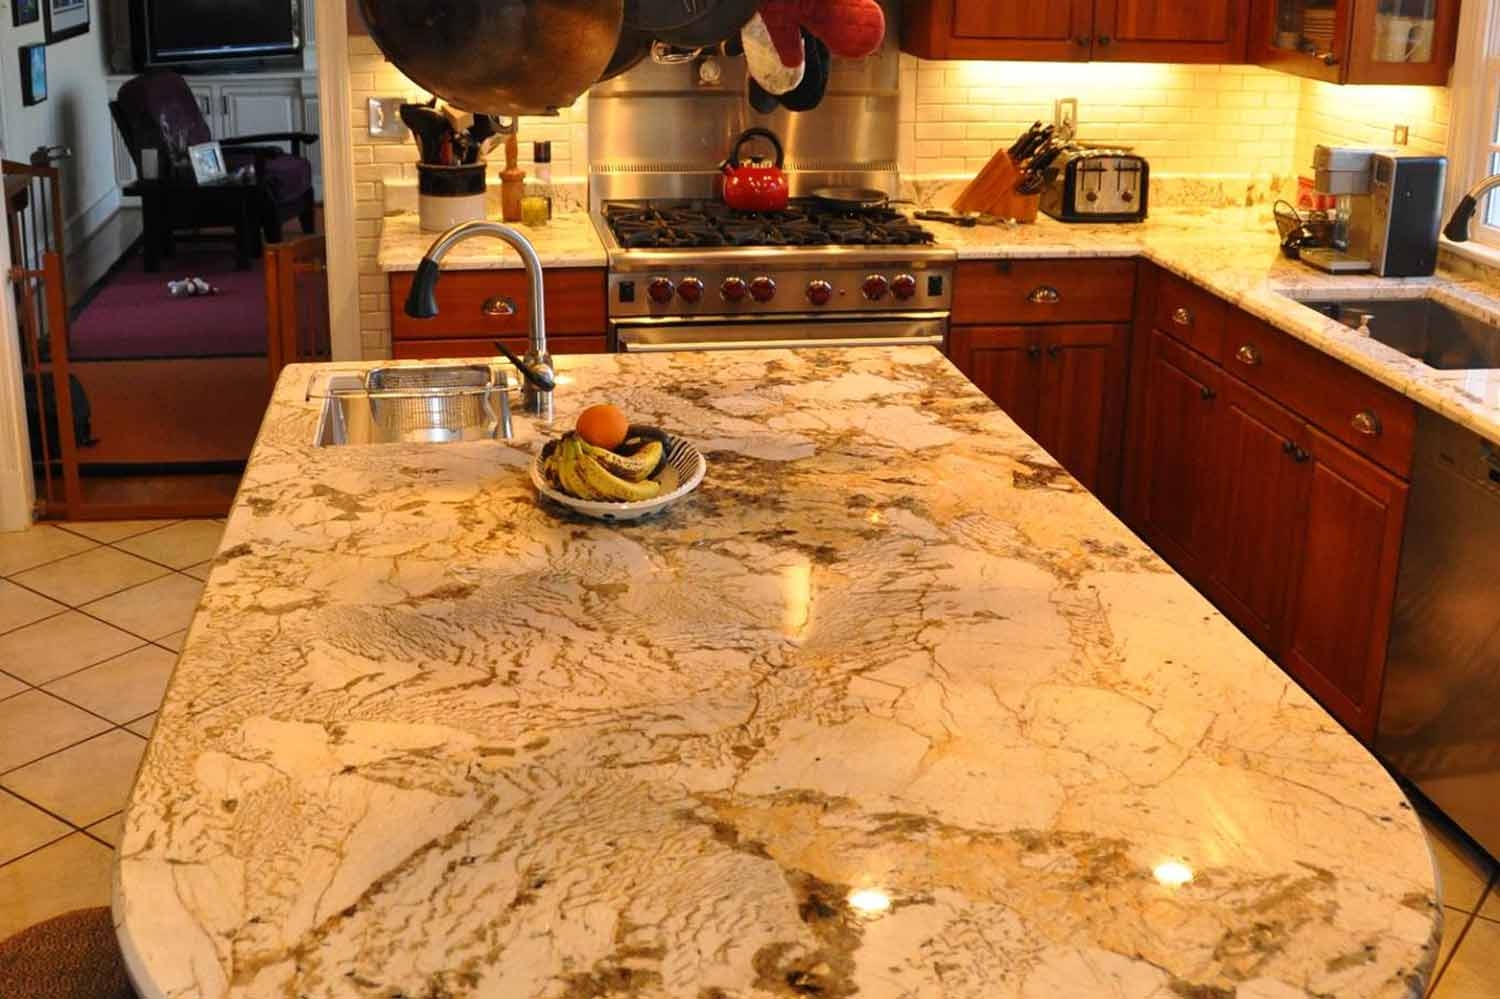 Granite Countertop For Kitchen : granite tile counter tops photo gallery